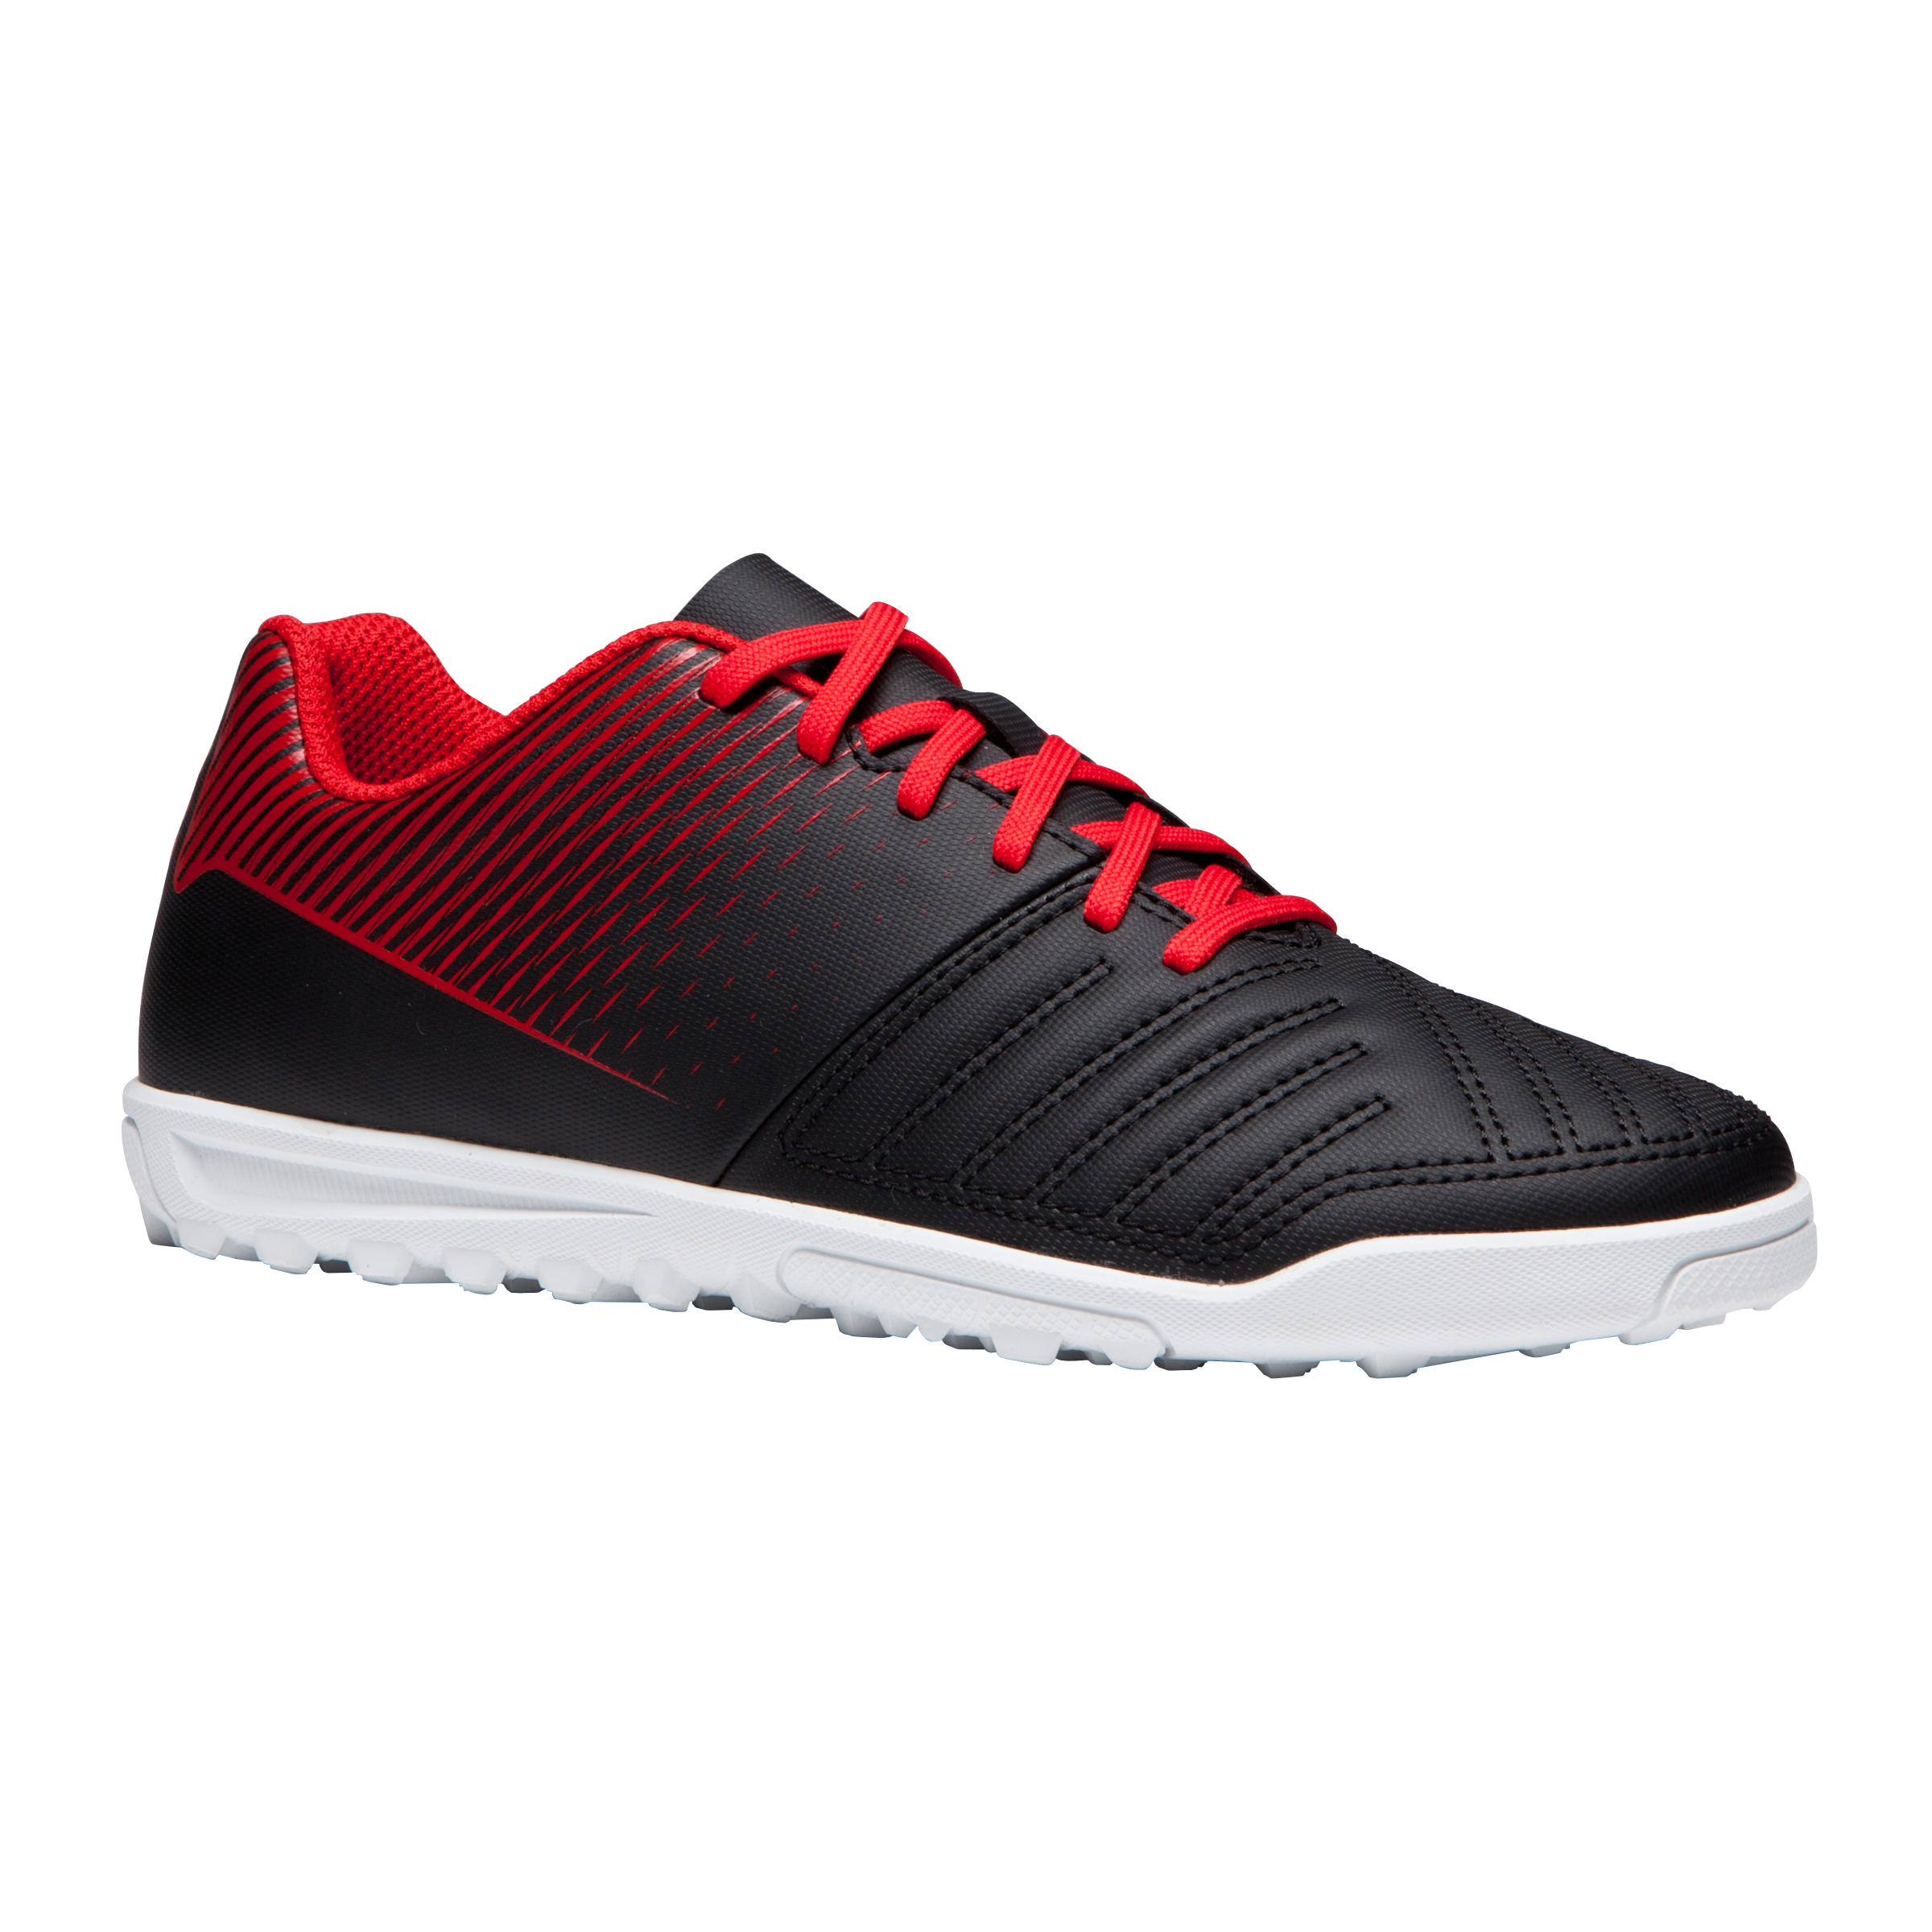 Football Enfants Chaussures Chaussures Adulteamp; De Adulteamp; De Football Enfants rCeBodx